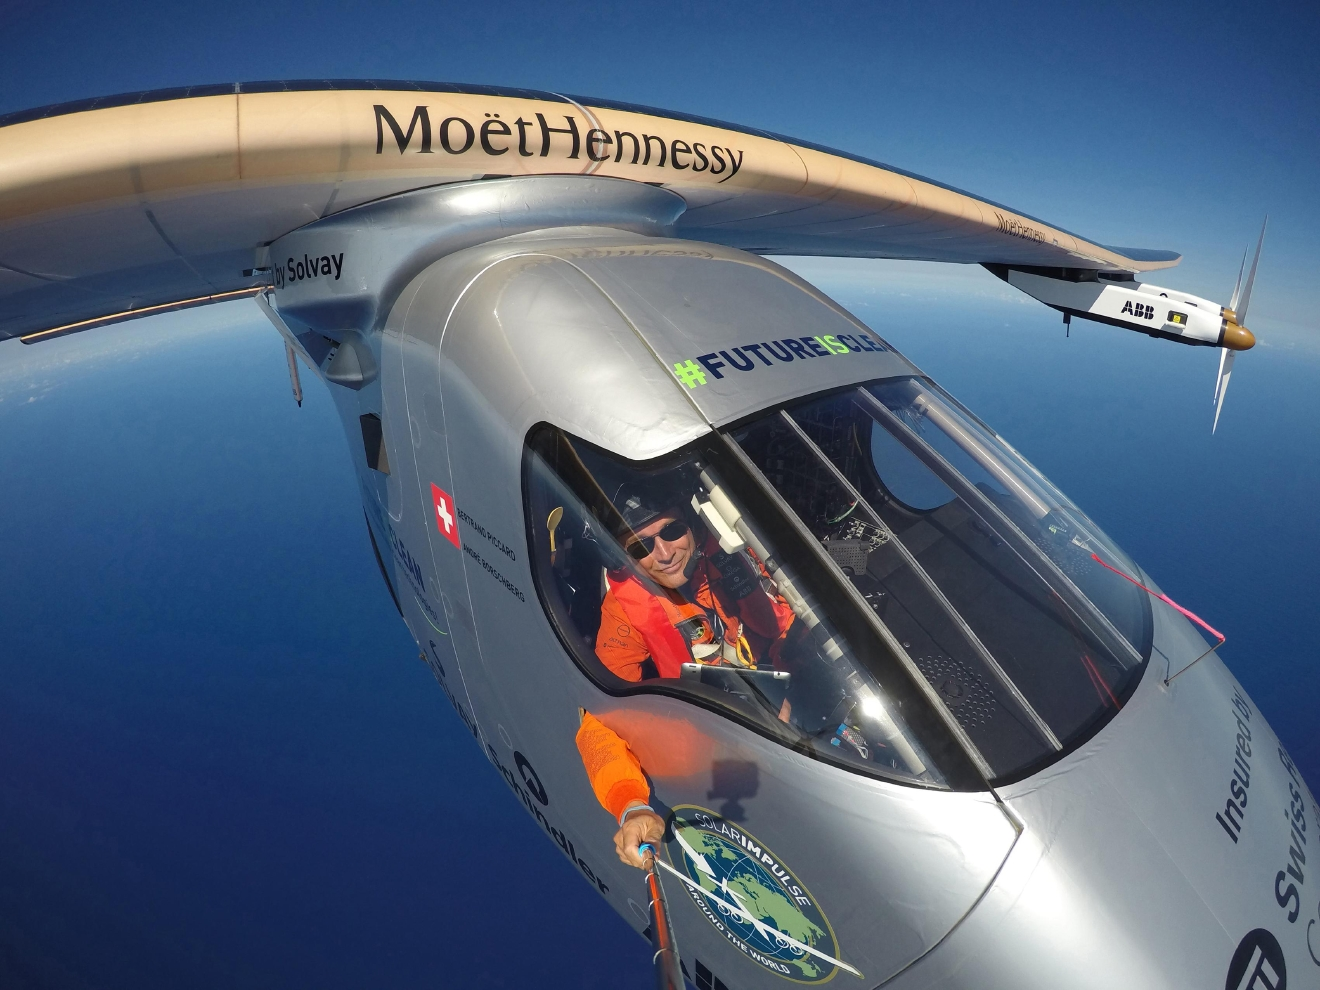 This April 9, 2016 photo provided by Bertrand Piccard via Global Newsroom shows Piccard taking a selfie on board Solar Impulse 2 during a test flight over the Pacific Ocean.  The solar-powered airplane on an around-the-world journey had traveled 80 percent of the way from Hawaii to California by Saturday, April 23.  The aircraft's destination on this leg of the journey is Mountain View, Calif., at the southern end of San Francisco Bay.  (Bertrand Piccard/Global Newsroom via AP)